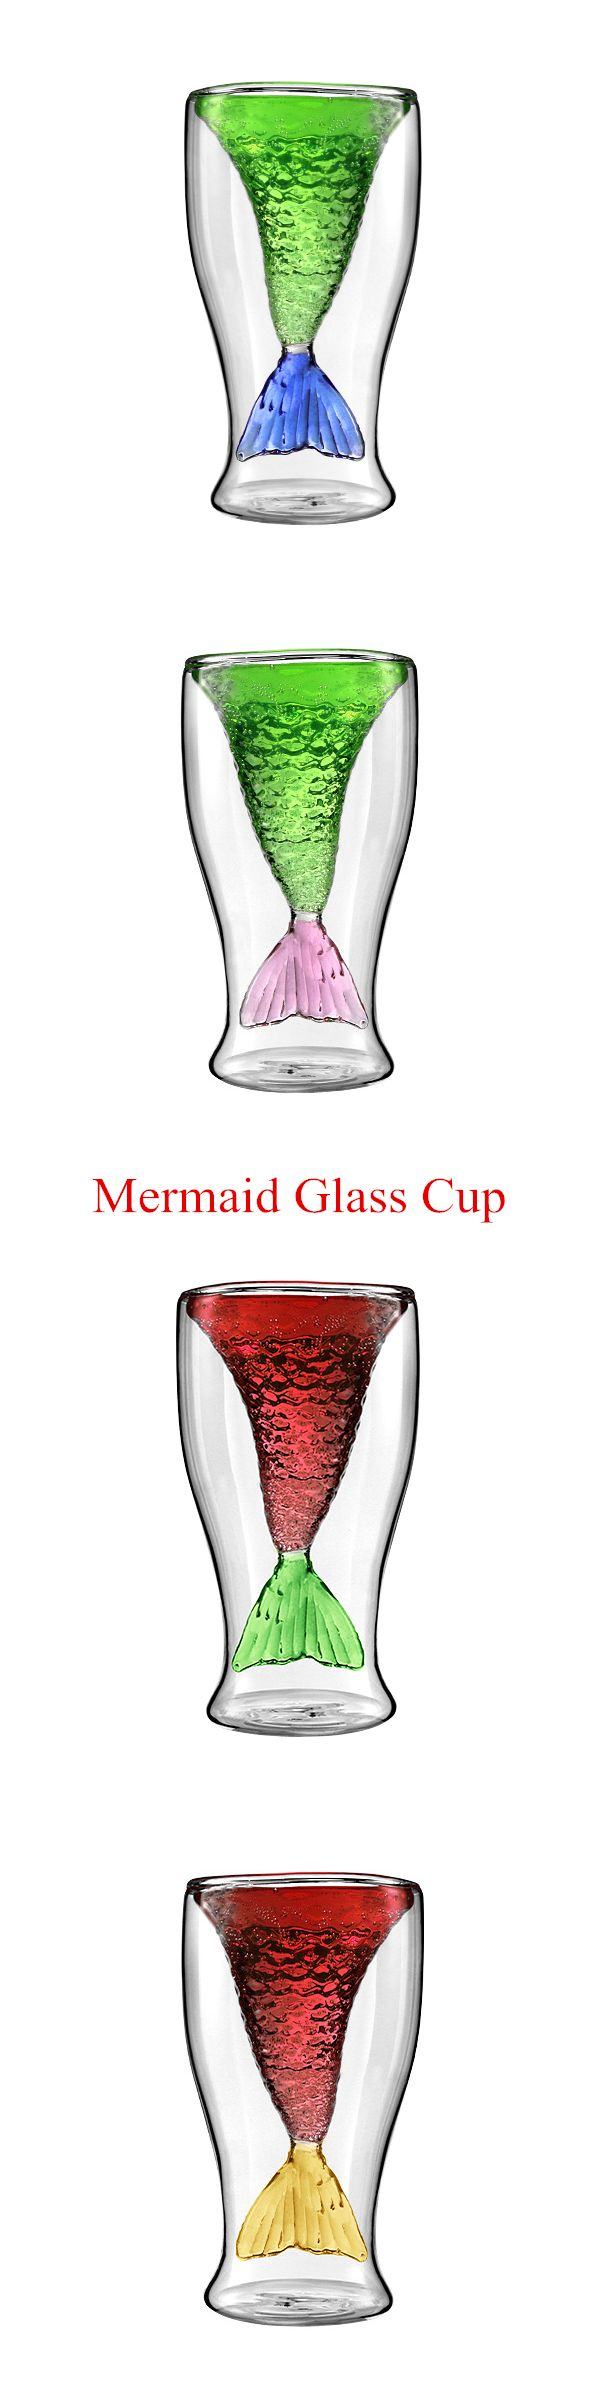 US$8.50 Double Layer Mermaid Glass Cup Wine Beer Vodka Drinking Bar Party Home Heat-proof Mug 100ML